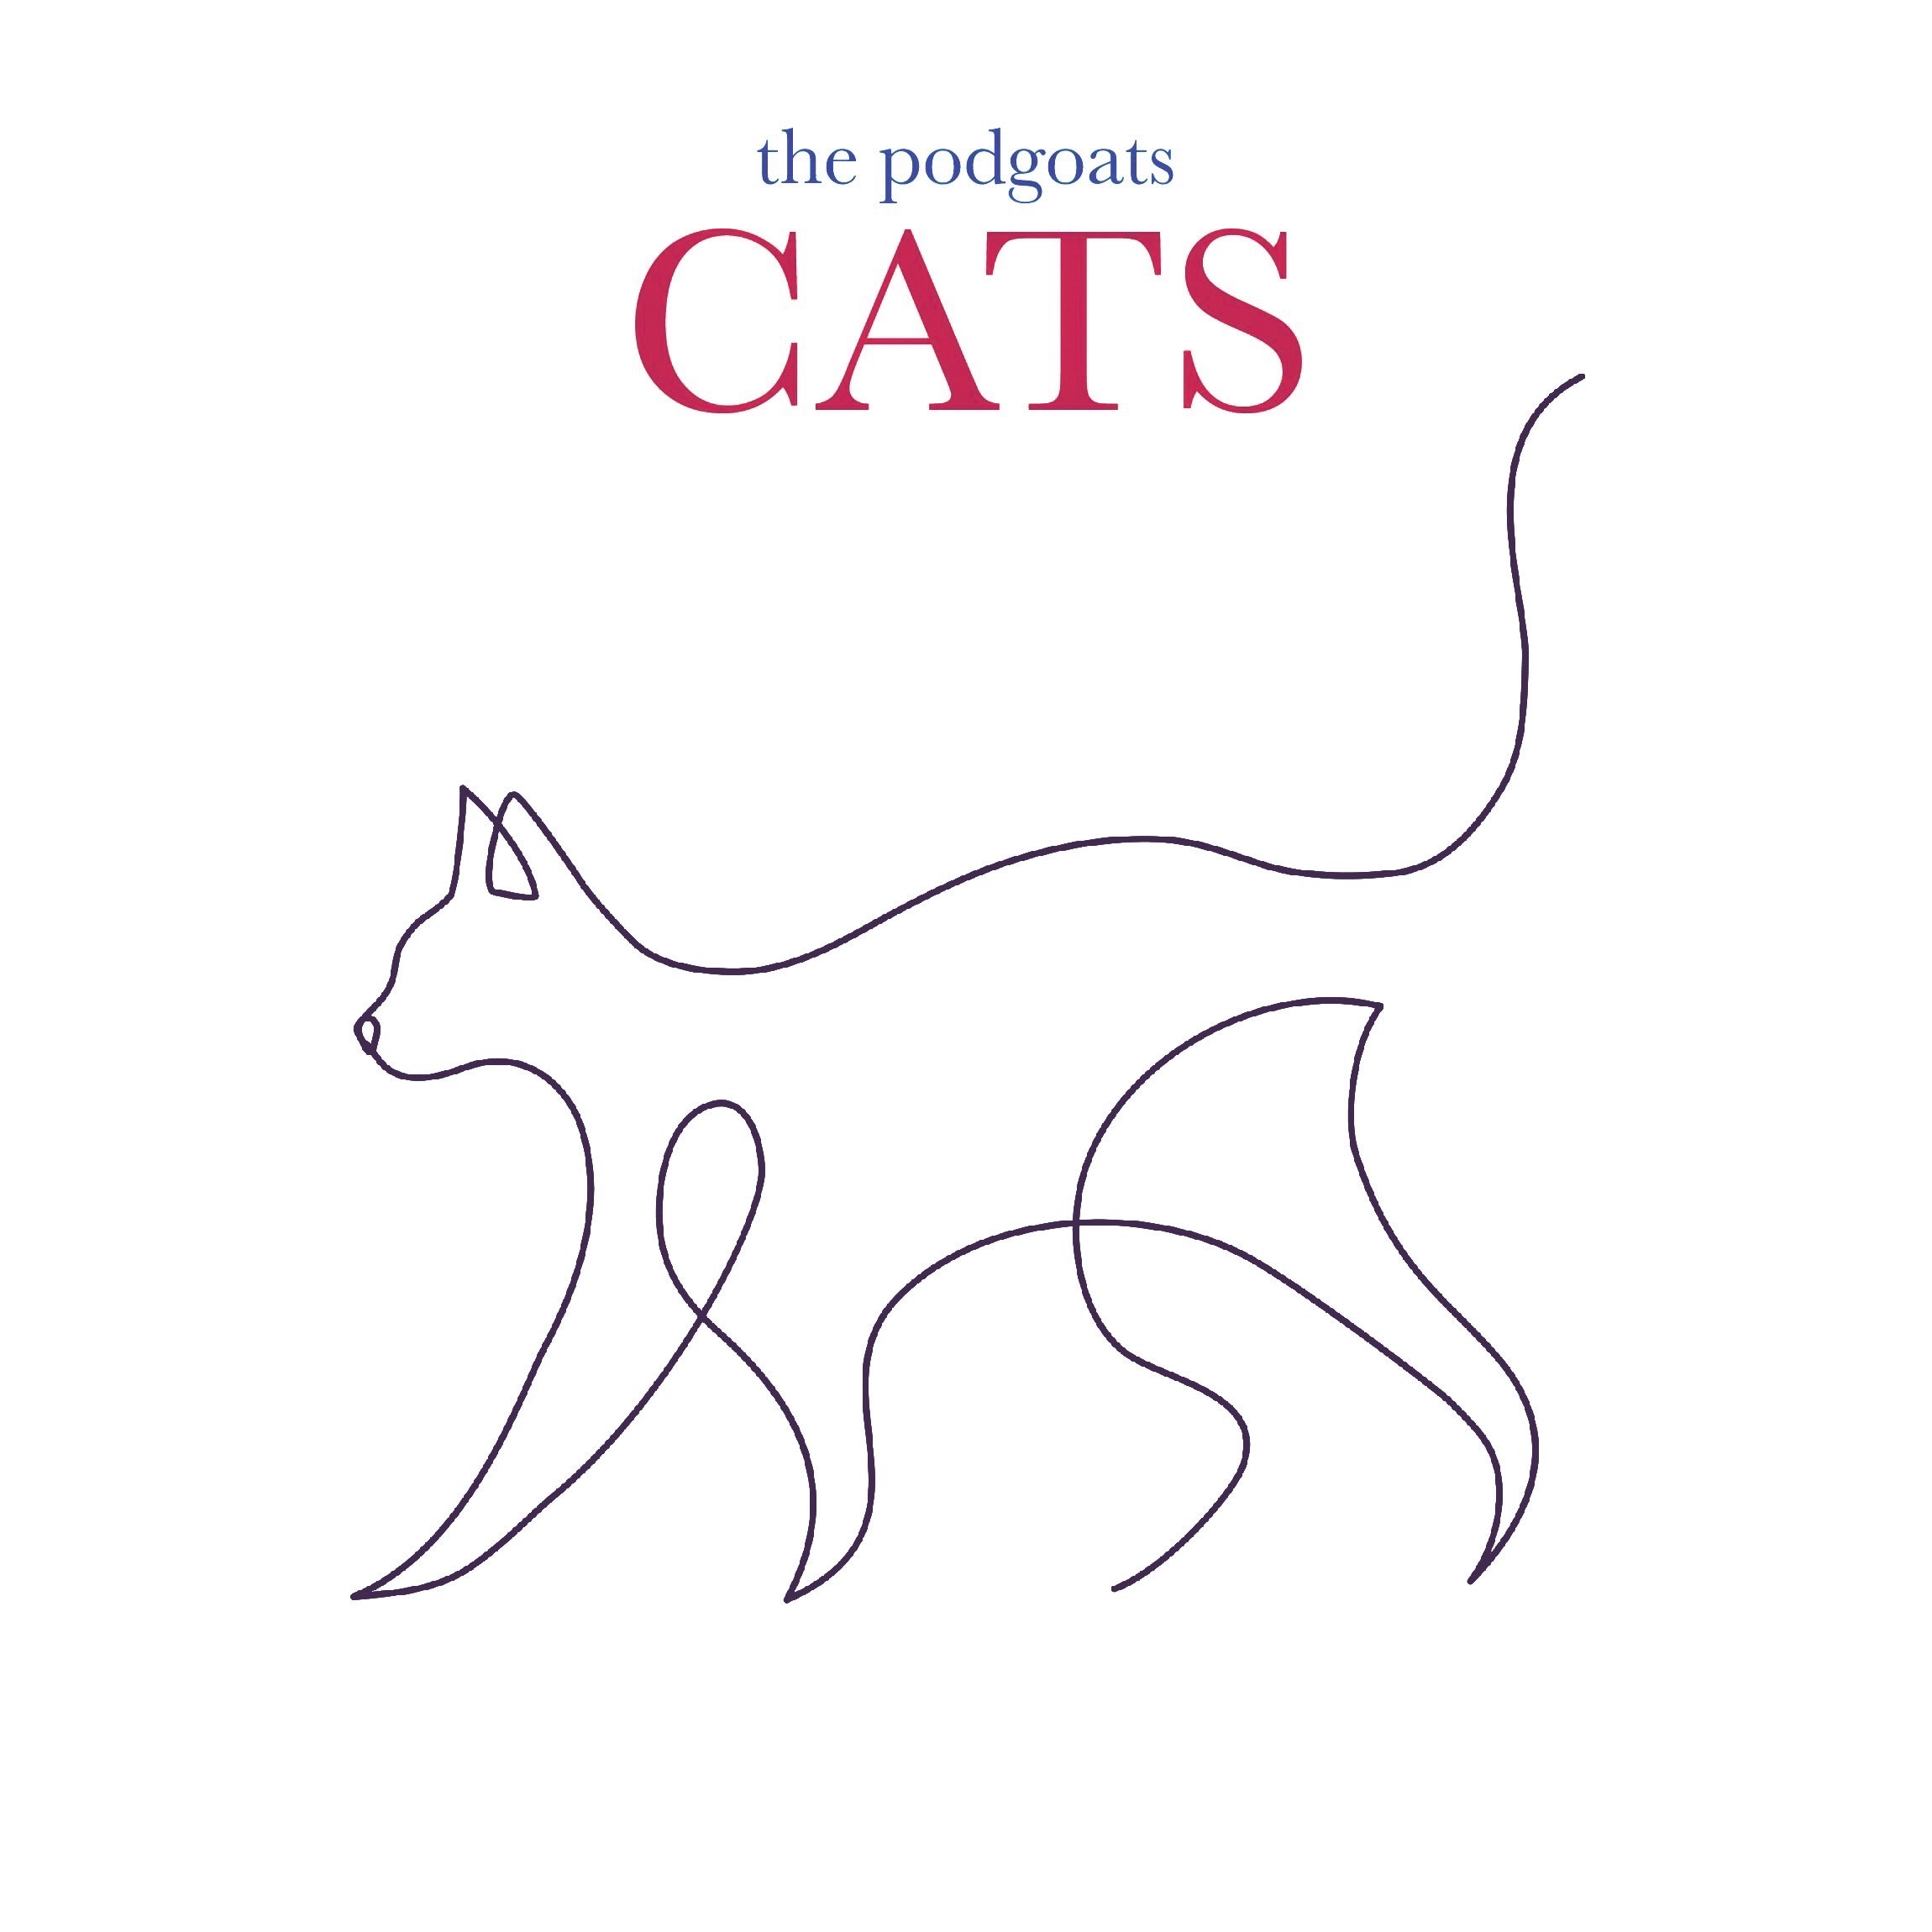 Cats: The History of the Mysterious Feline